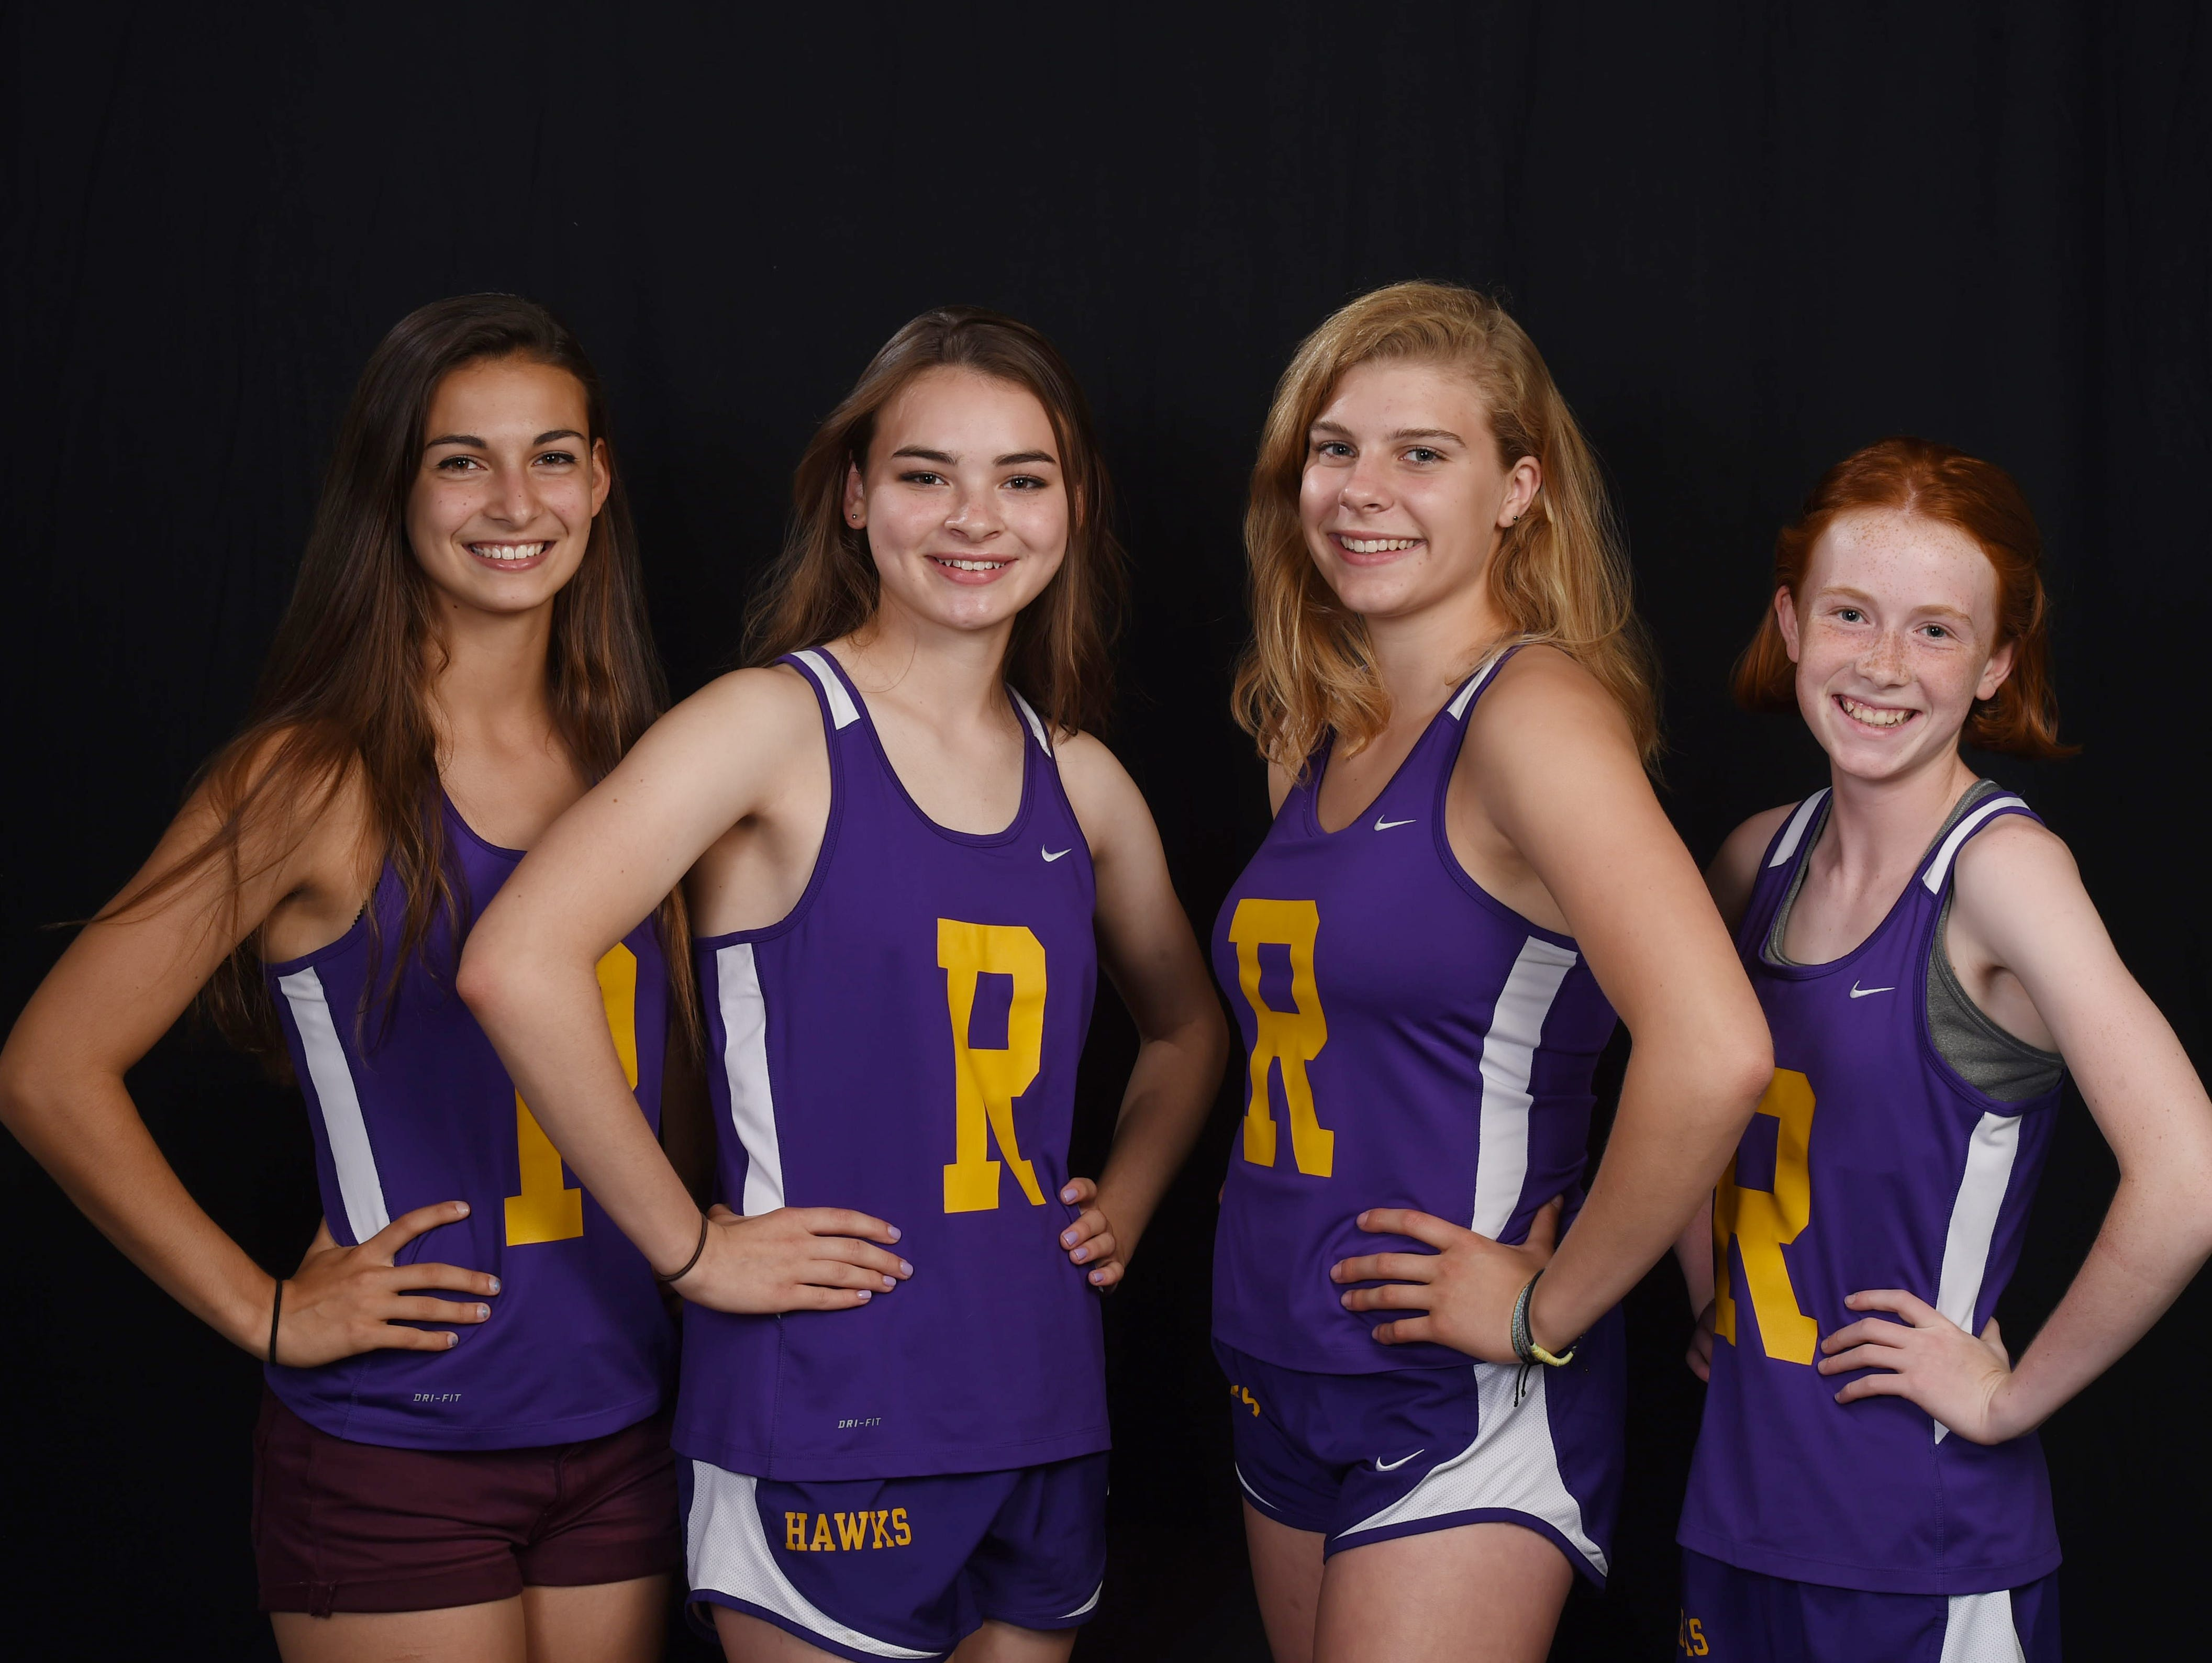 From left, Stephanie Cassens, Daisy Gadsby, Maggie Bennett and Elise Voorhis, Rhinebeck track & field, 4x400 relay